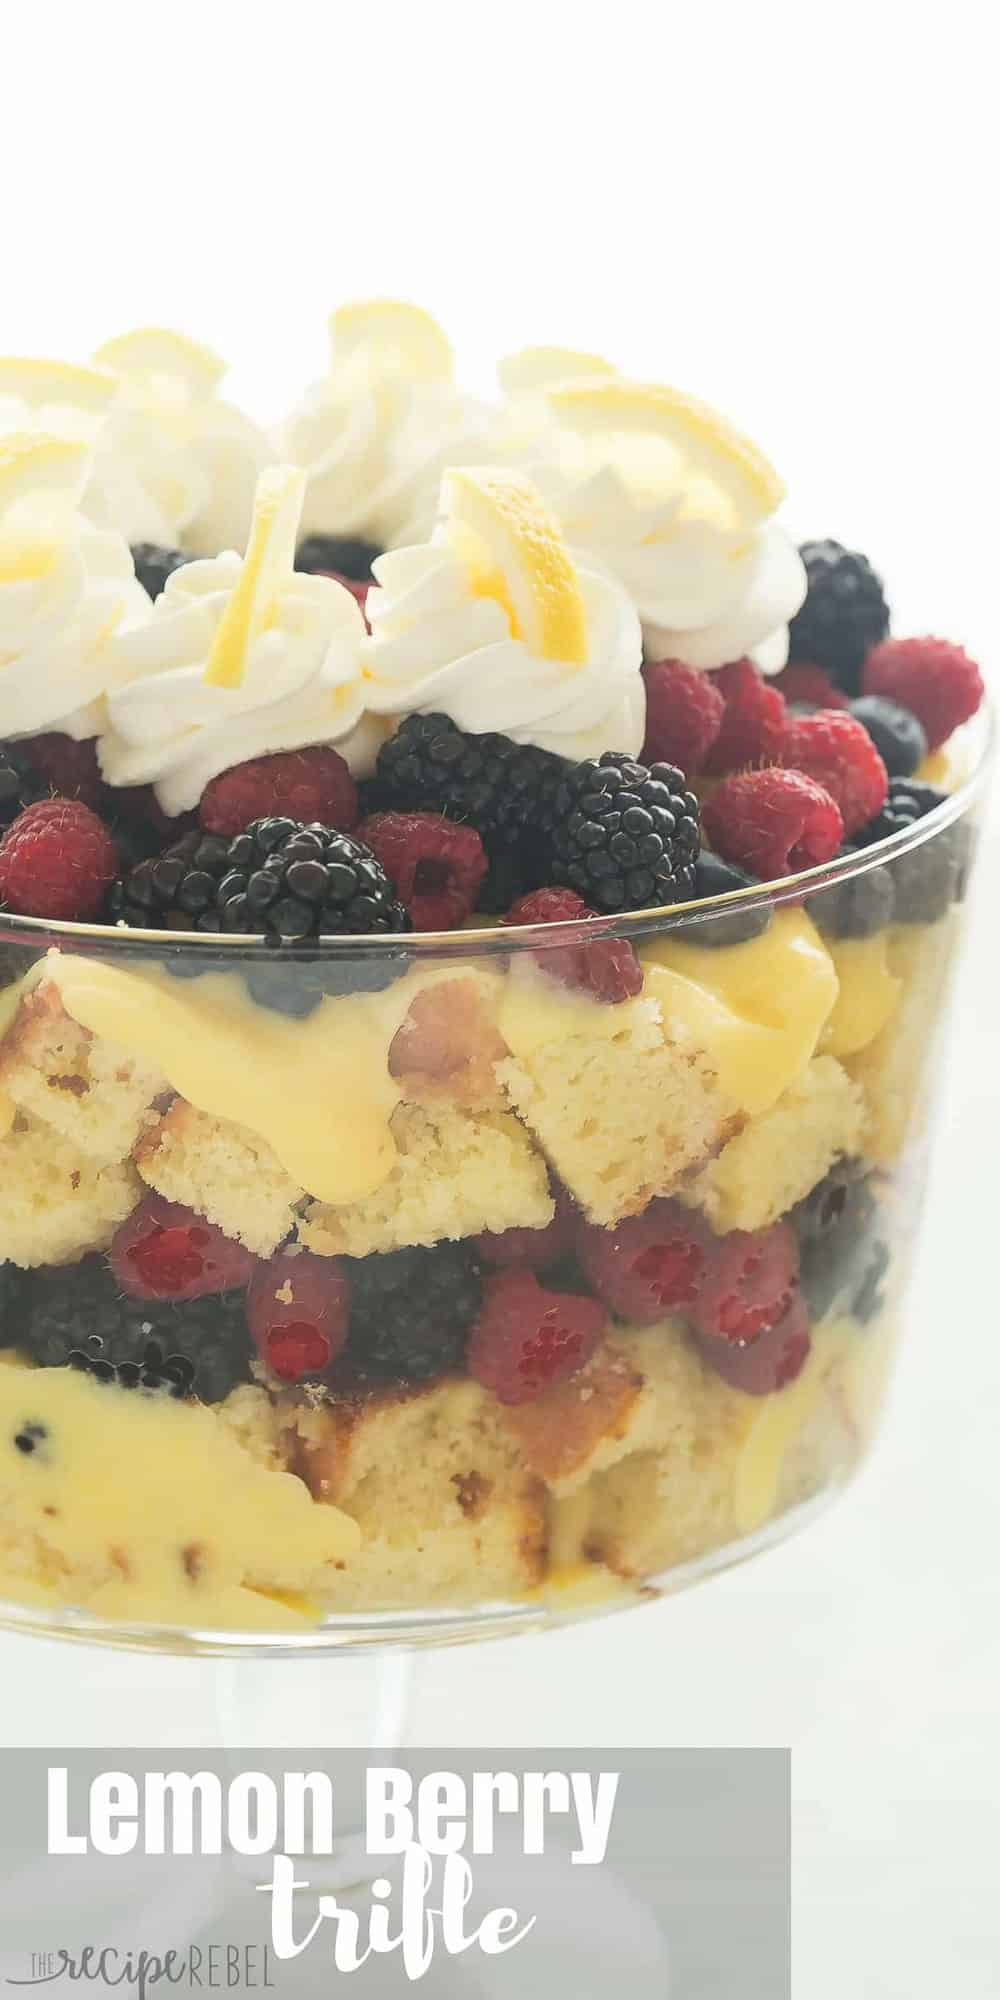 This Lemon Berry Trifle is made up of a homemade Greek Yogurt Lemon Cake, vanilla pudding, whipped cream and piles of fresh berries! It is the perfect summer dessert! Includes step by step recipe video | lemon dessert | spring dessert | easy recipe | Easter | Christmas dessert | baking